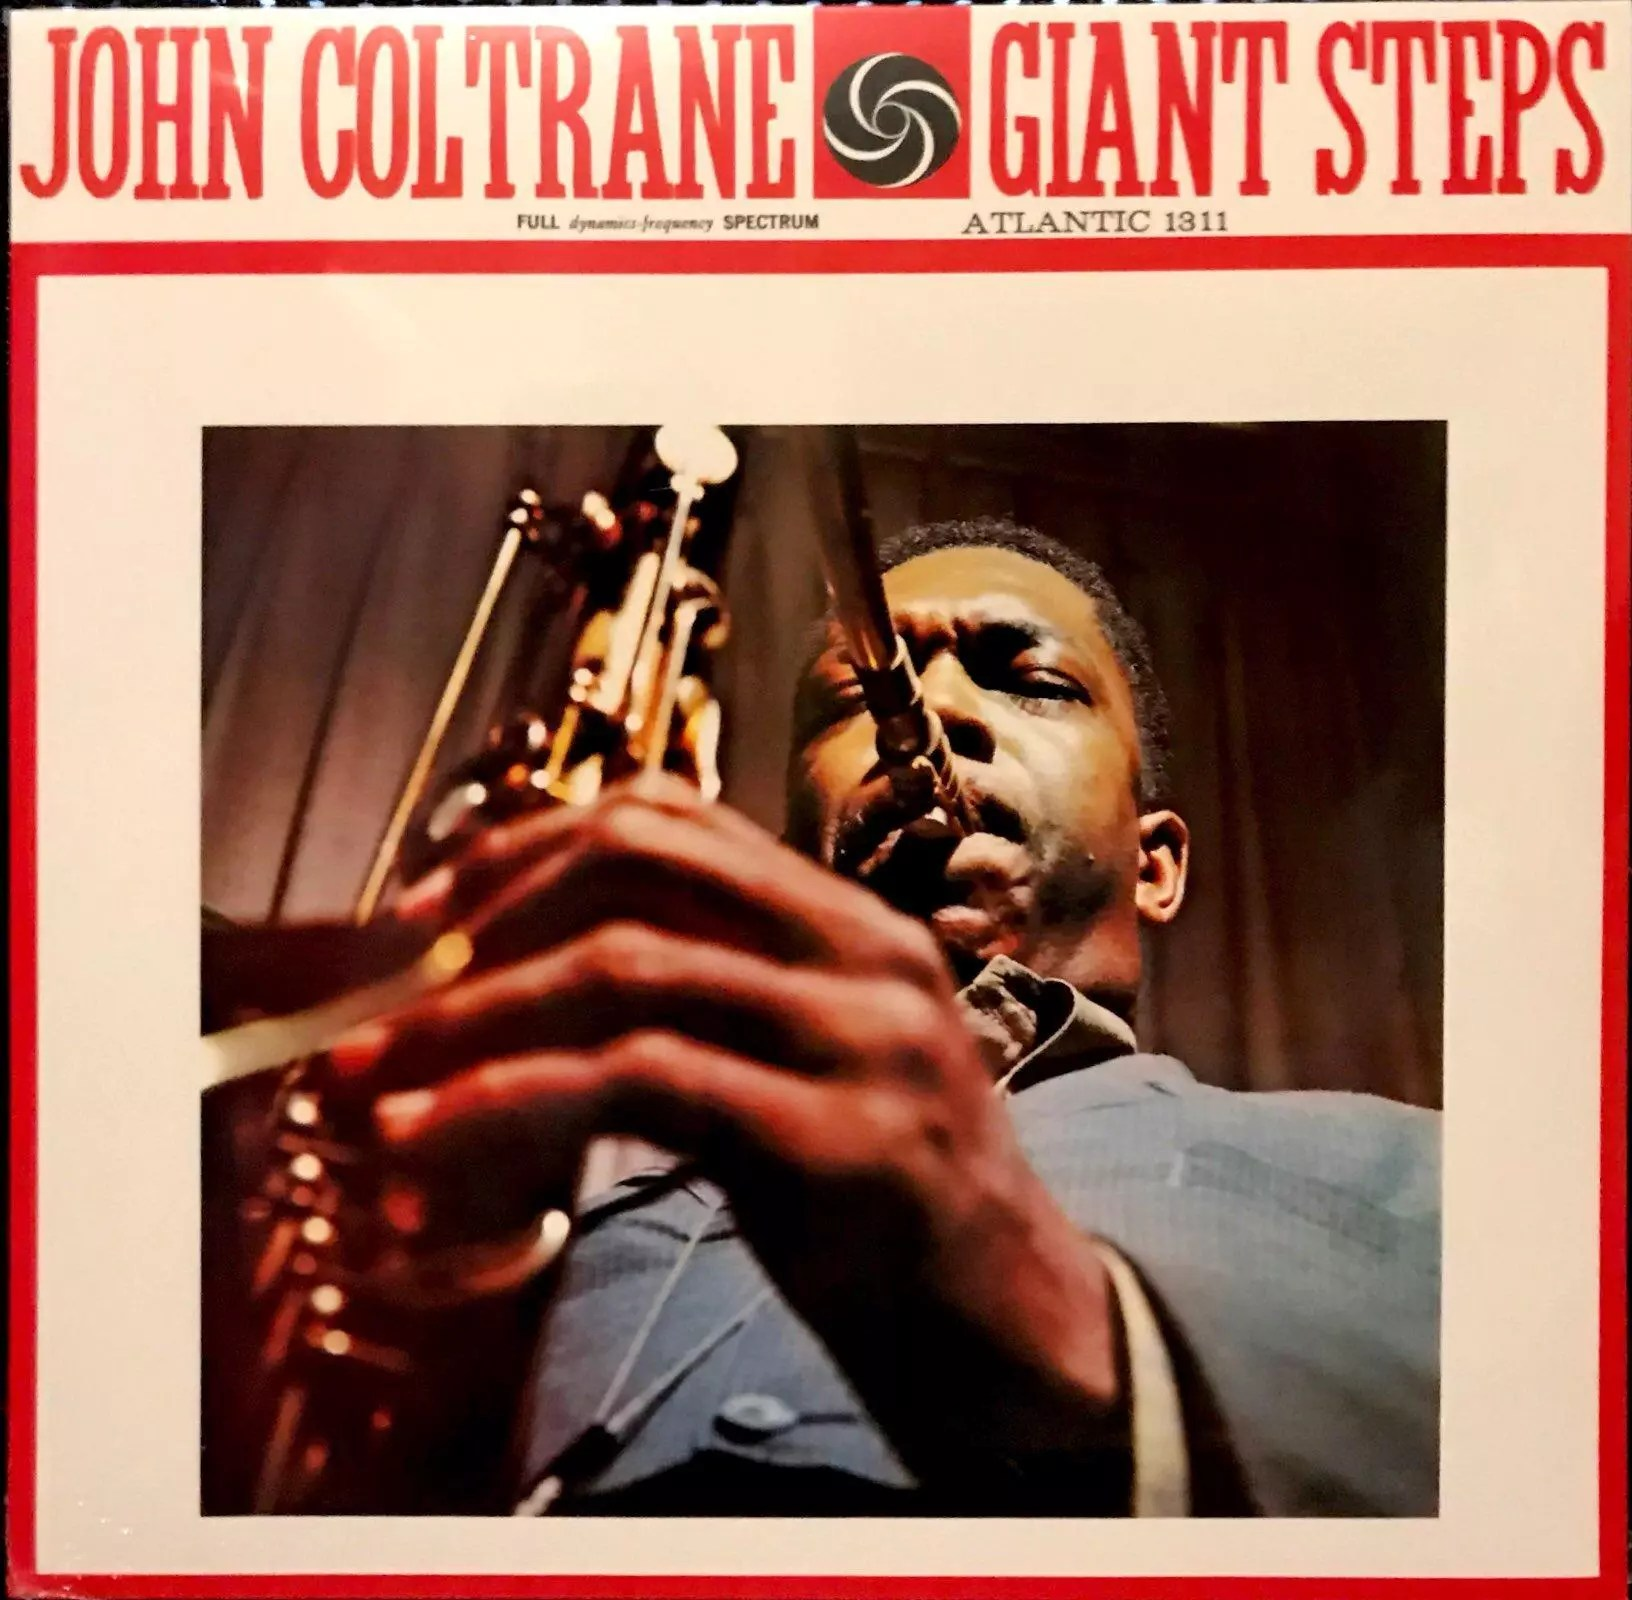 Cover image of John Coltrane's album, Giant Steps [Credit: Ged Carroll, CC 2.0]